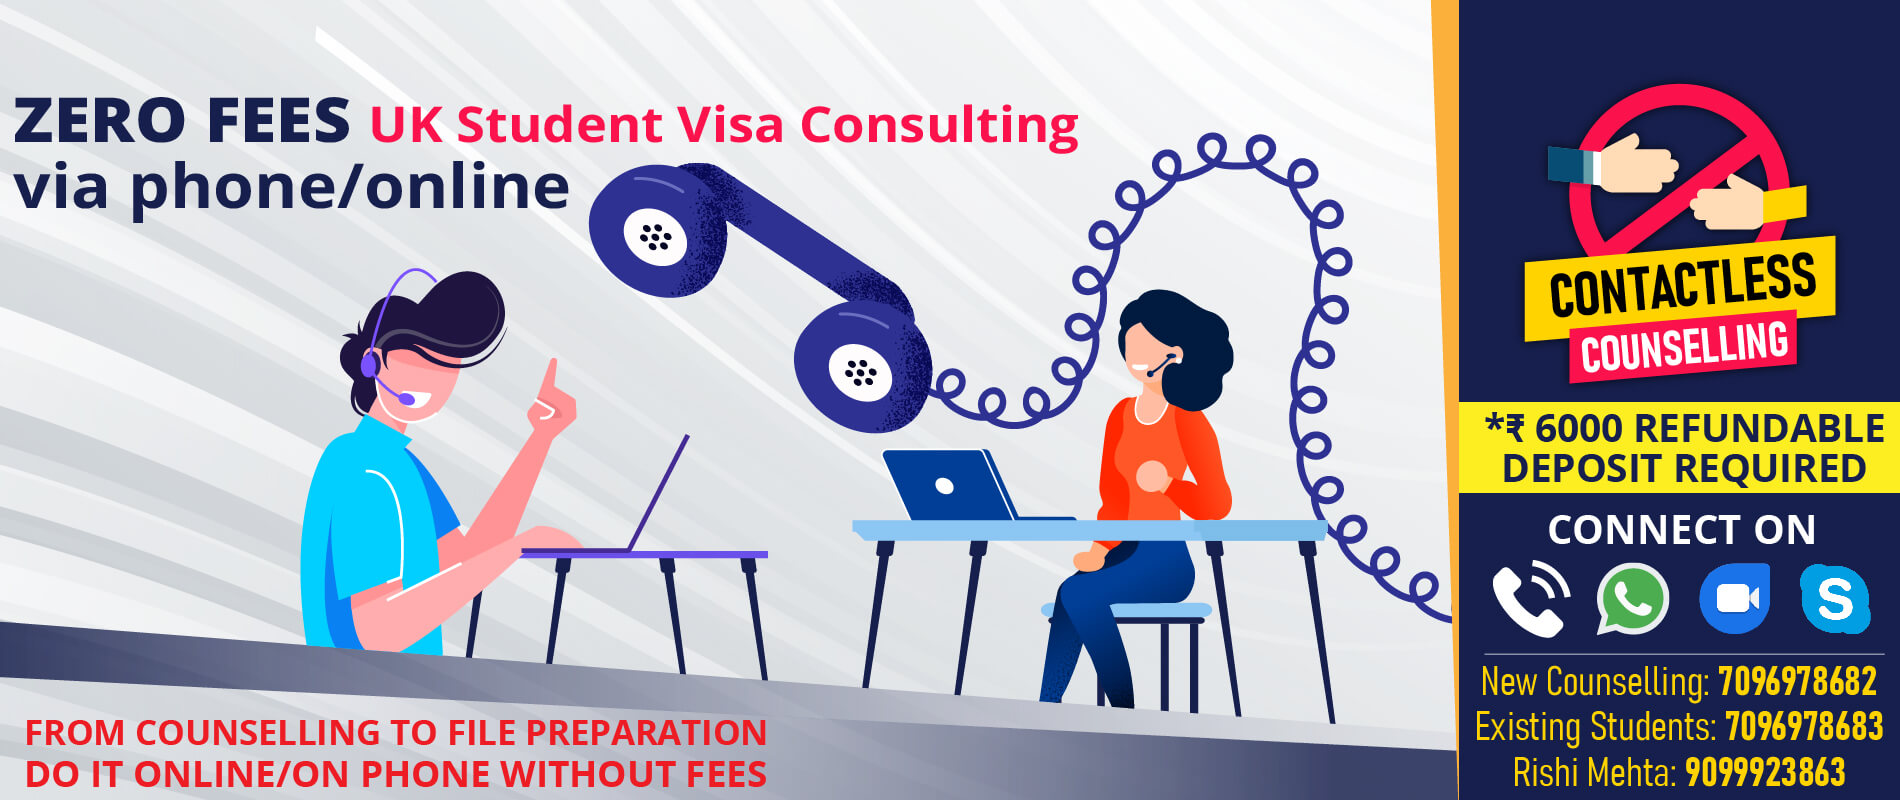 Contactless Counselling COVID19 Visa Consultancy in Vadodara Edge International